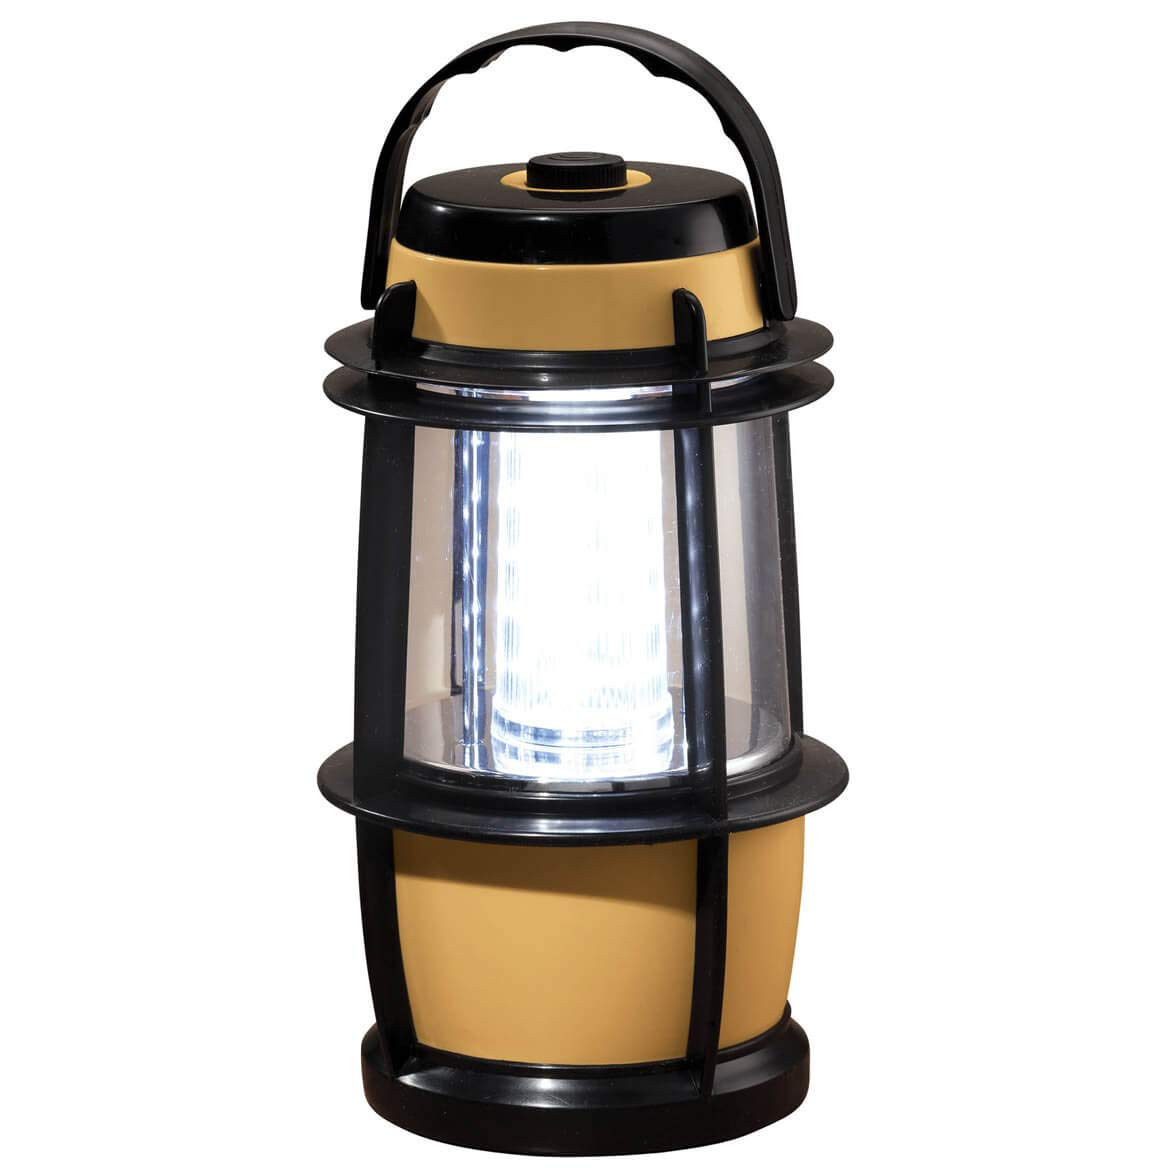 Battery Operated Bright LED Lantern Light w//Built-in Dimmer Switch 4.75 Dia x 9H